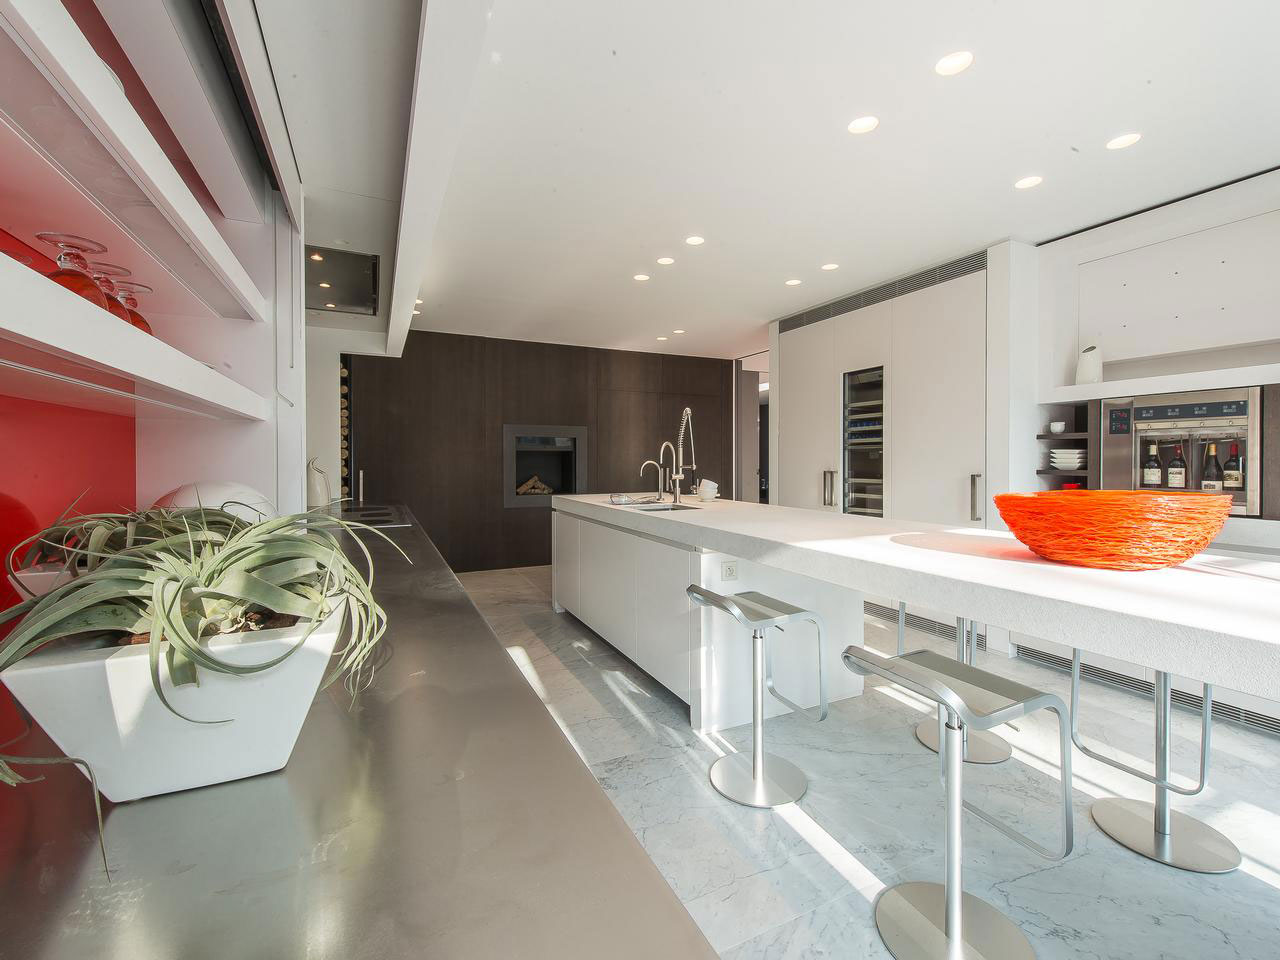 Breakfast Bar, Kitchen Island, Fireplace, House Renovation in Sint-Genesius-Rode, Belgium